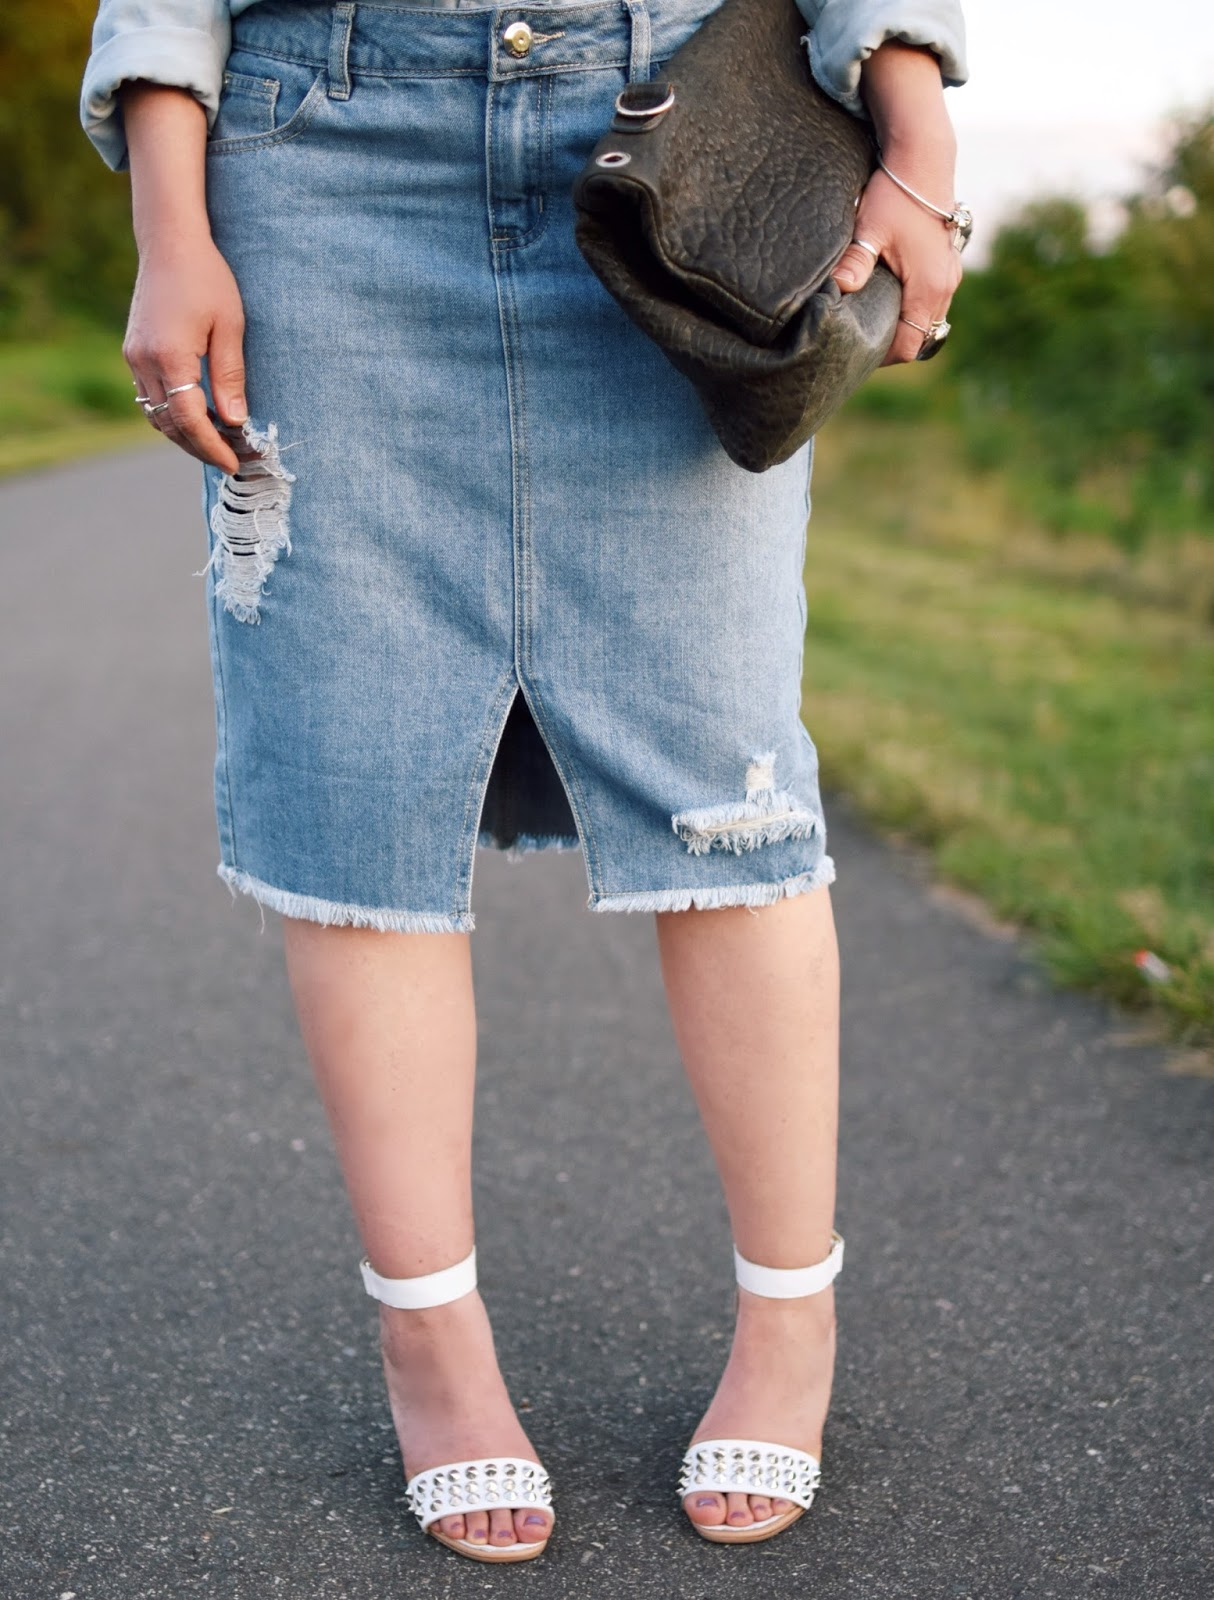 styling a distressed denim pencil skirt with a chambray shirt, studded ankle-strap sandals, and leather satchel